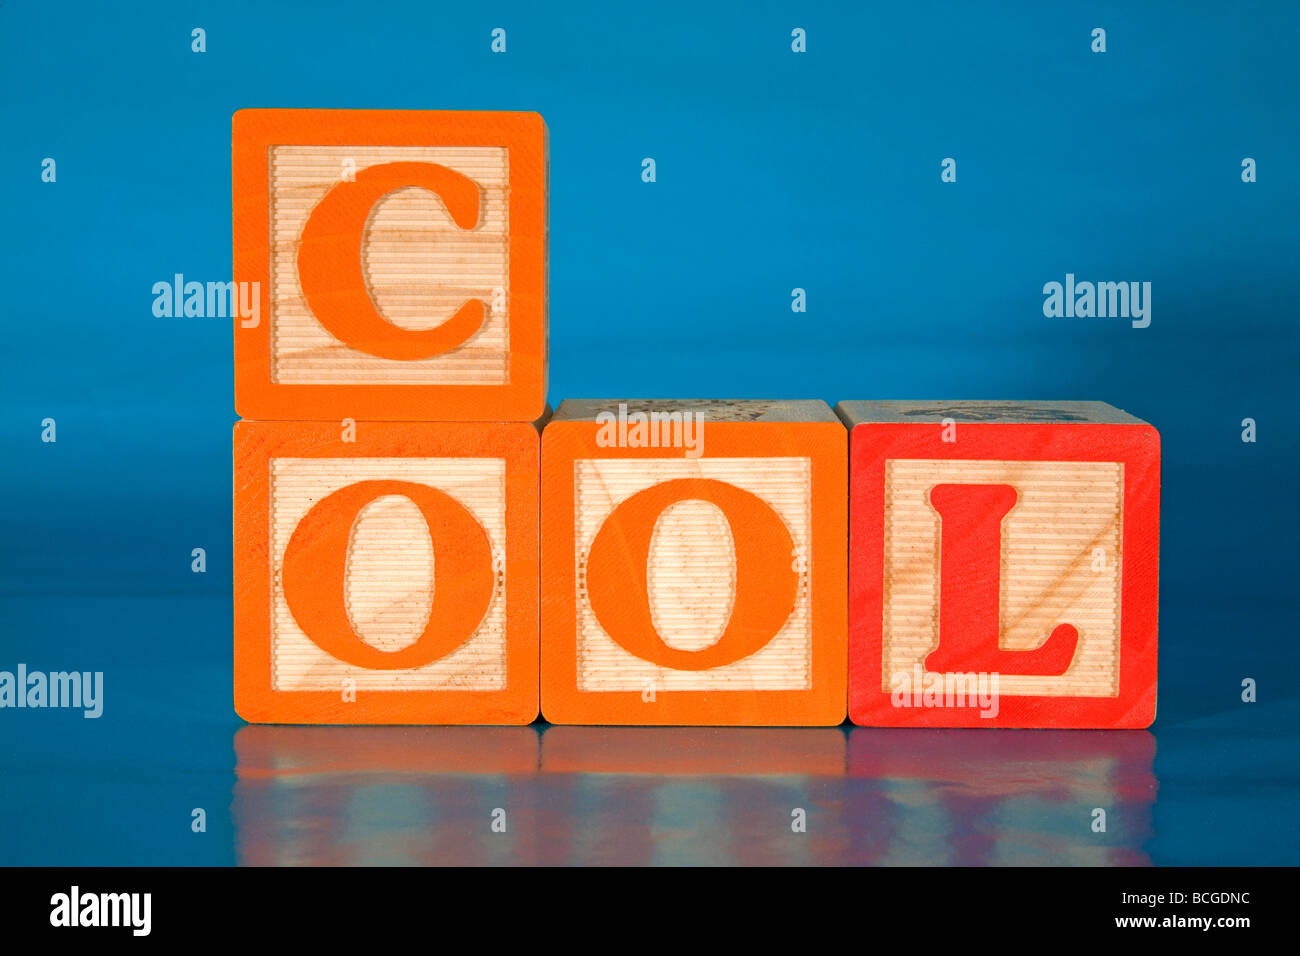 Cool I m cool you re cool everything s cool too cool - Stock Image